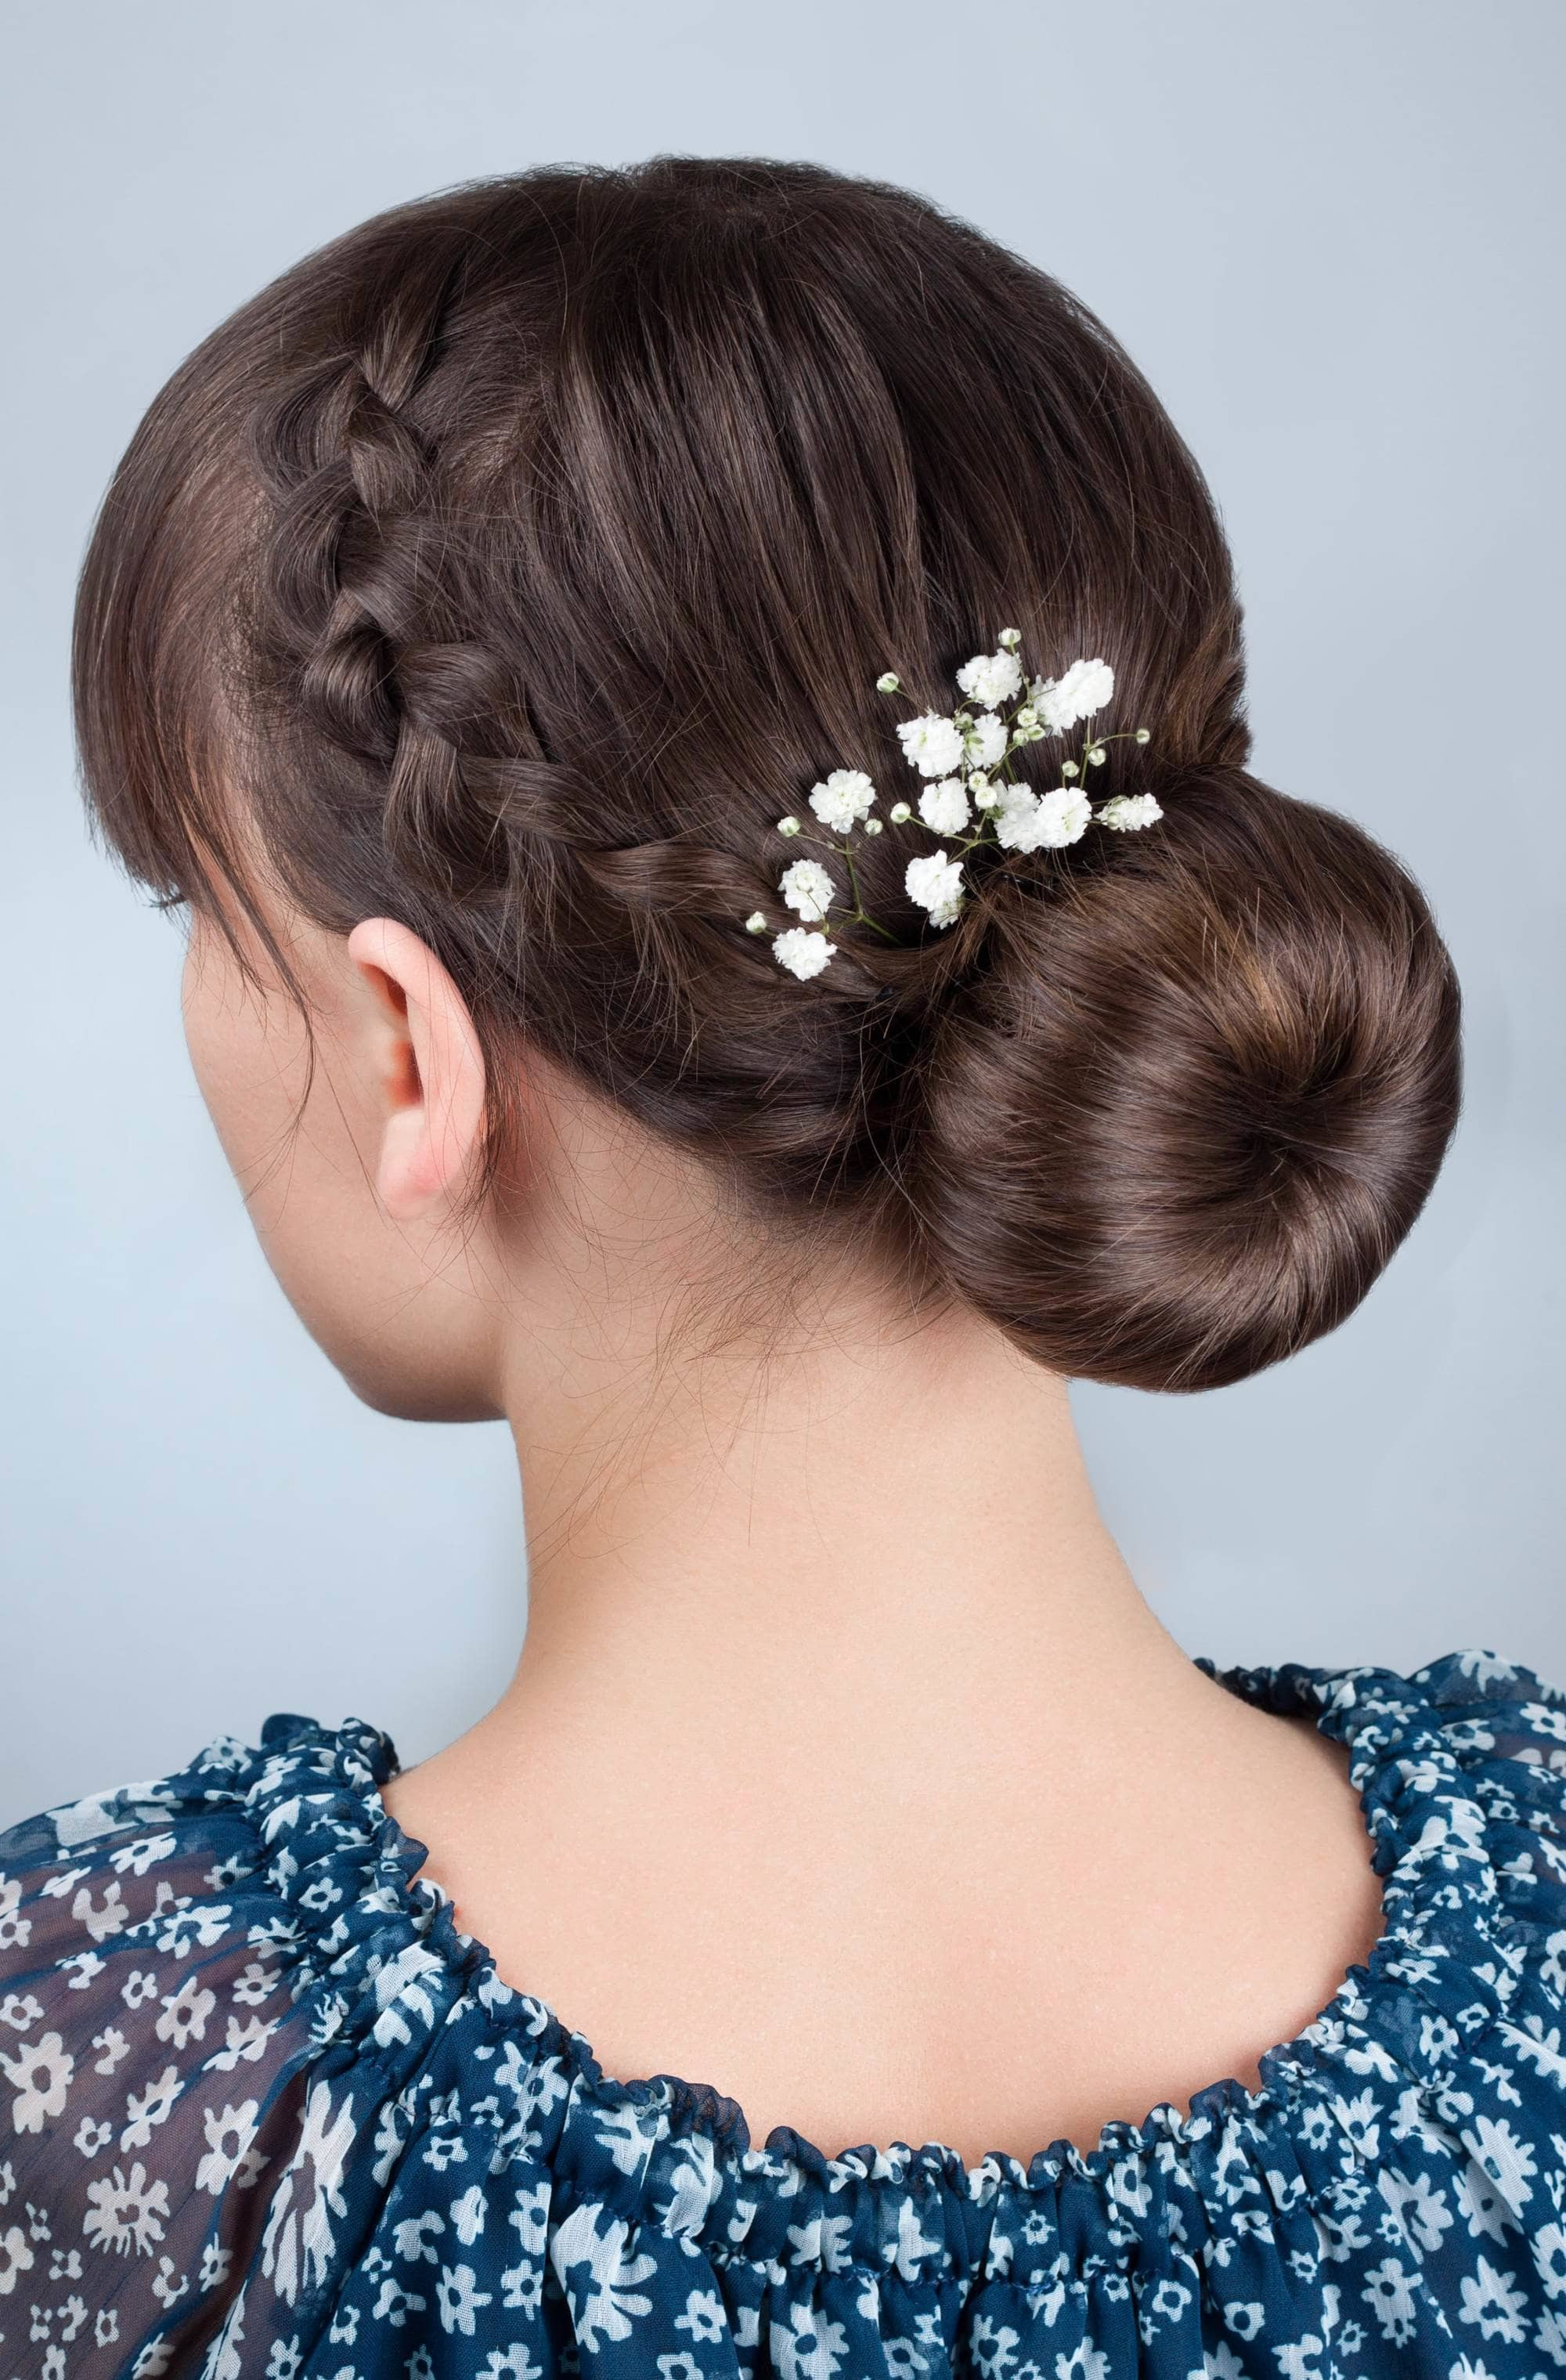 Straight Wedding Hairstyle  Straight Hair Ideas For Weddings 4 Chic Looks To Wear